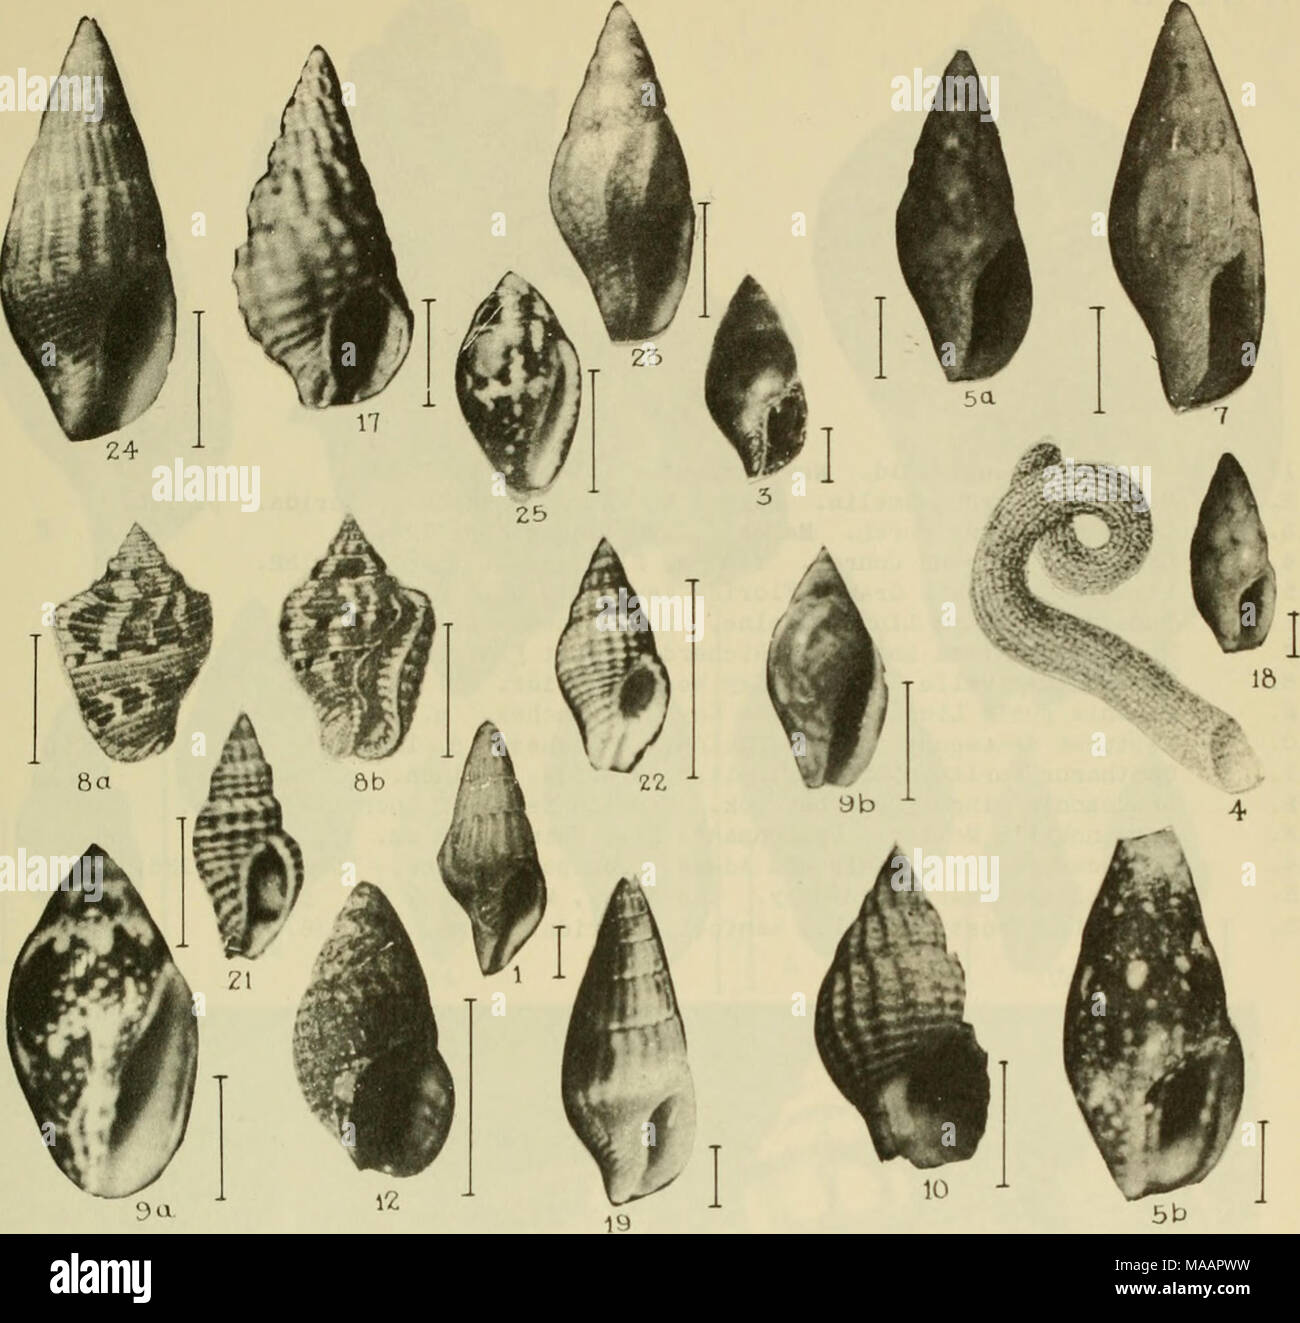 . East coast marine shells : descriptions of shore mollusks together with many living below tide mark, from Maine to Texas inclusive, especially Florida, with more than one thousand drawings and photographs . ^^â F^H ^^F'V ^P^VHi ^^^^^^^F* ^^^^1 ^^v'^ ^r ^^^^l Eta ' 'j^^wf ^^^^^^^^^^^v^ ^^^KnUaHlil^^HHH - Stock Image